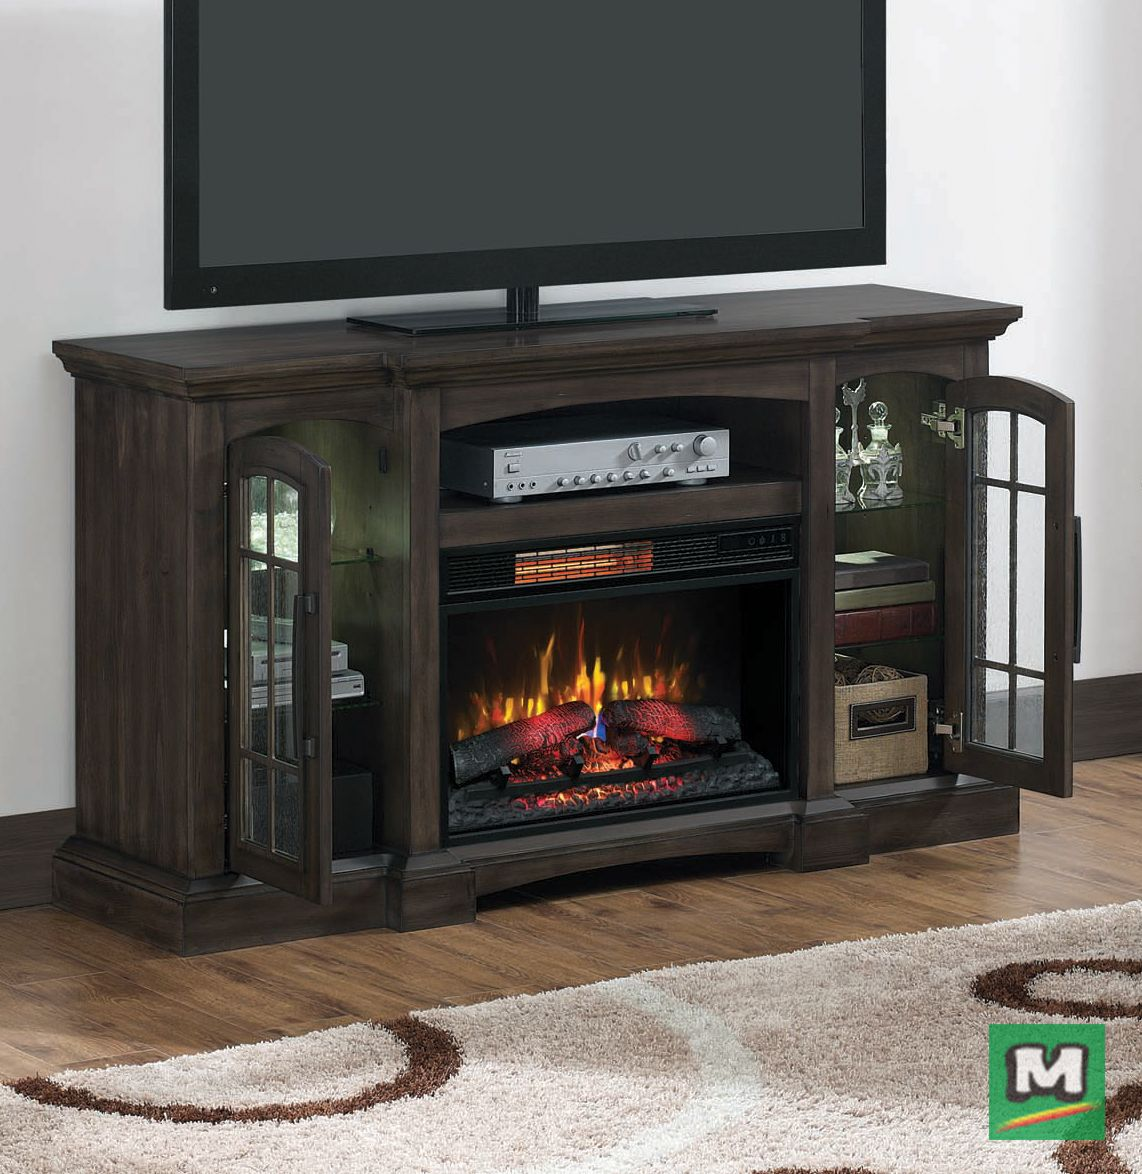 Dress Up Your Den With A Chimneyfree 60 Fairborn Electric Fireplace Entertain Electric Fireplace Entertainment Center Fireplace Entertainment Center Fairborn